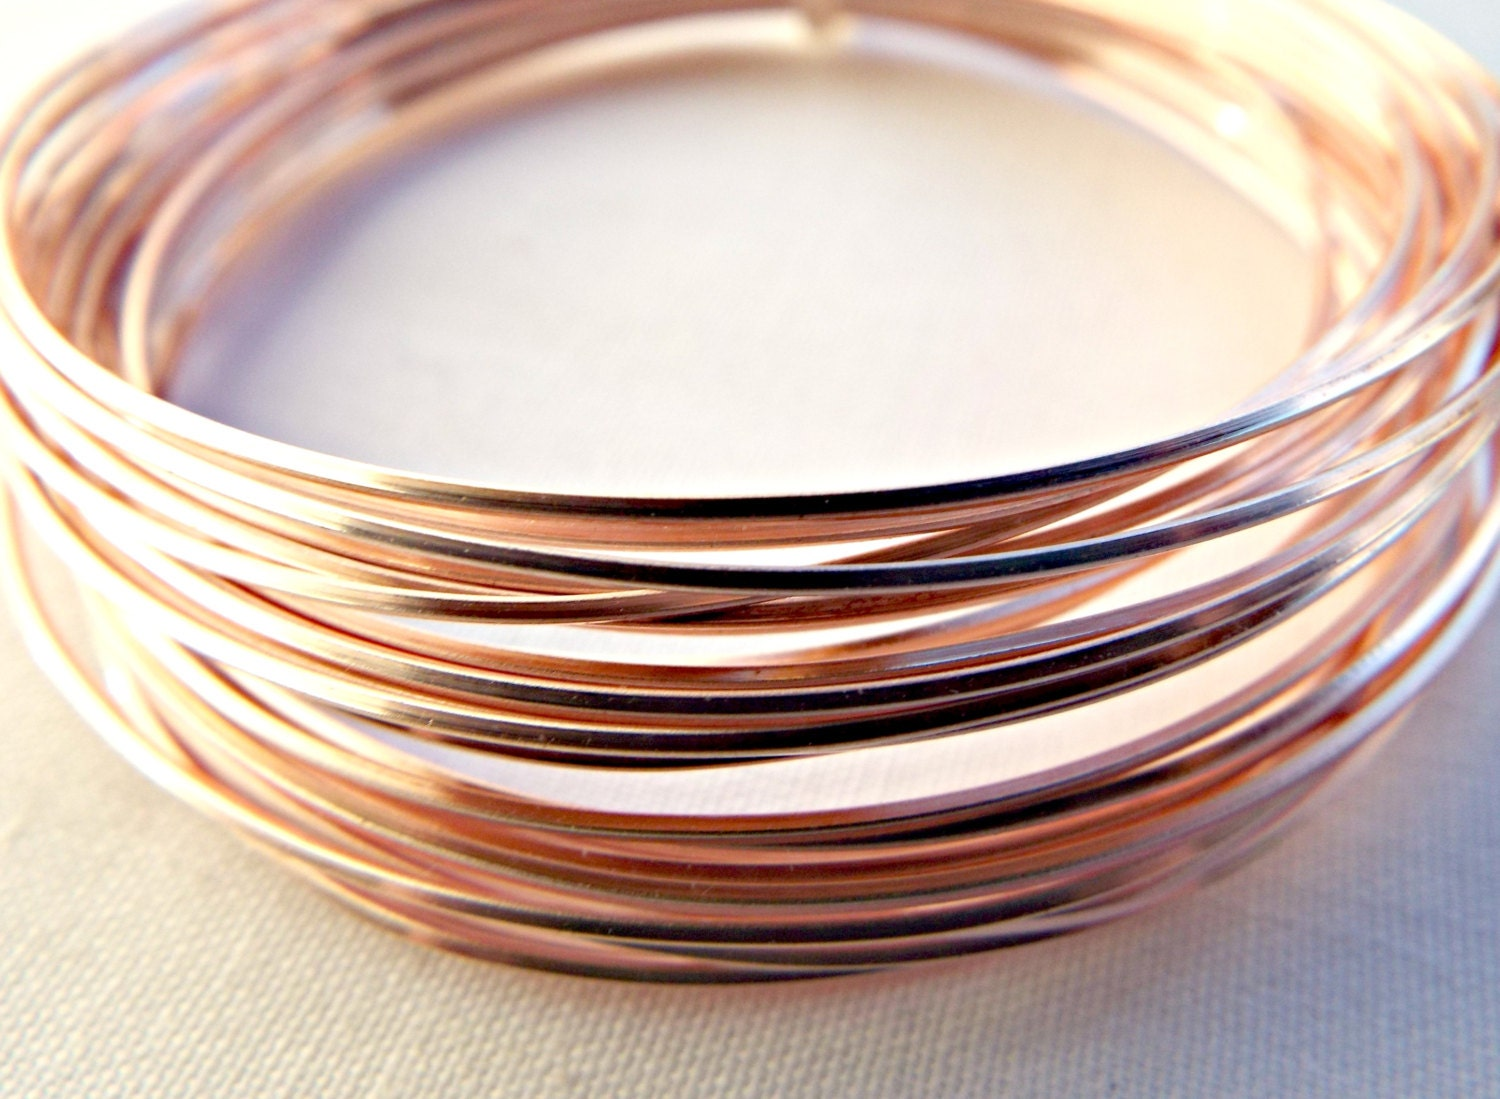 Rose gold wire square wire 20 gauge wire colored copper wire 08 rose gold wire square wire 20 gauge wire colored copper wire 08mm wire wire wrapping jewelry wire craft wire wire coil uk seller greentooth